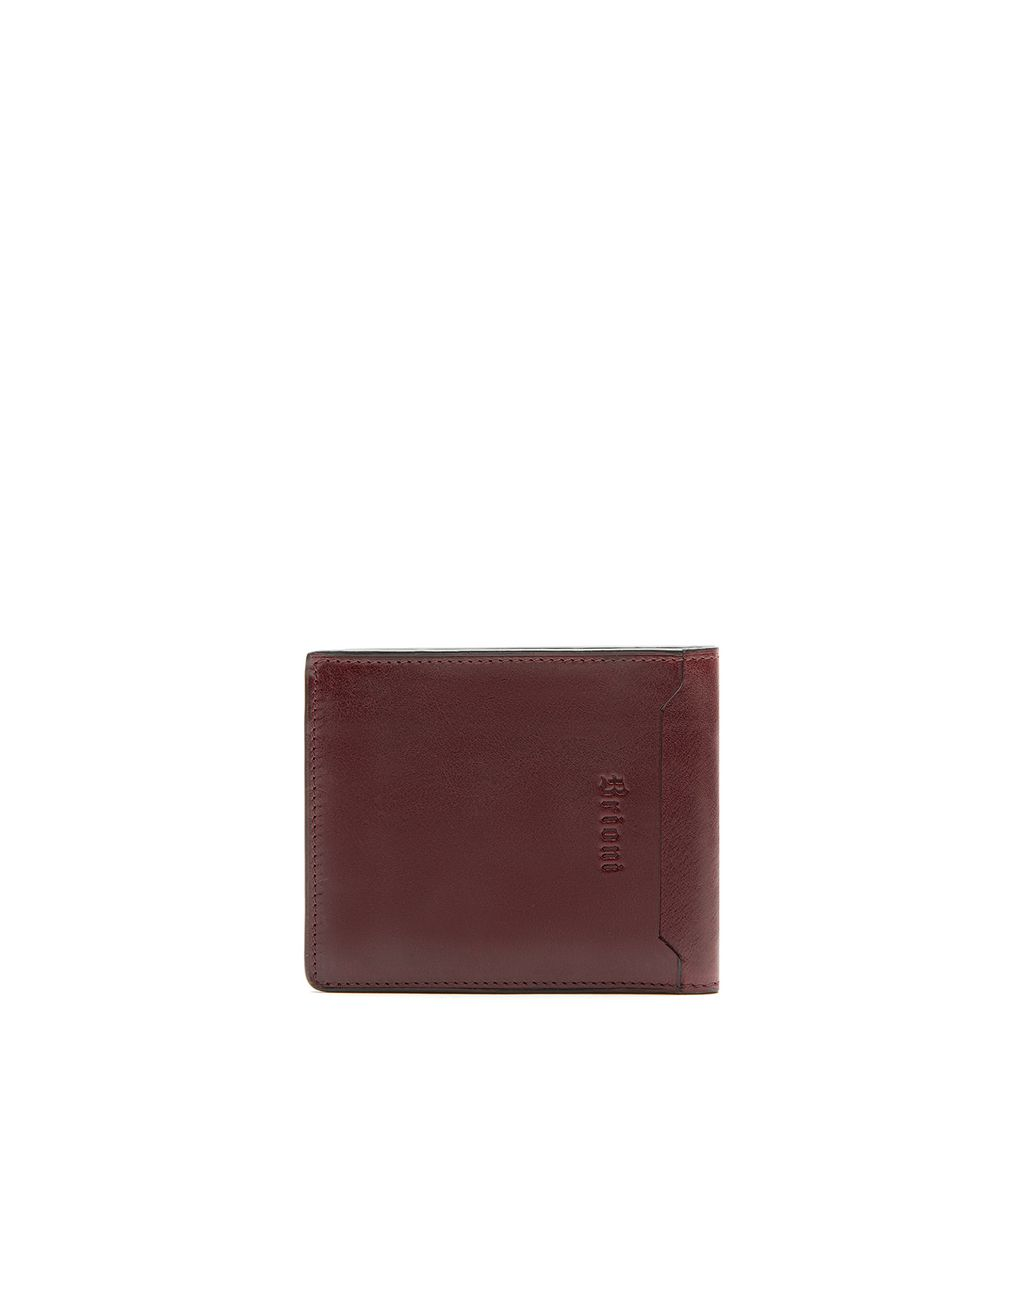 BRIONI Oxblood Slim Wallet Leather Goods Man d